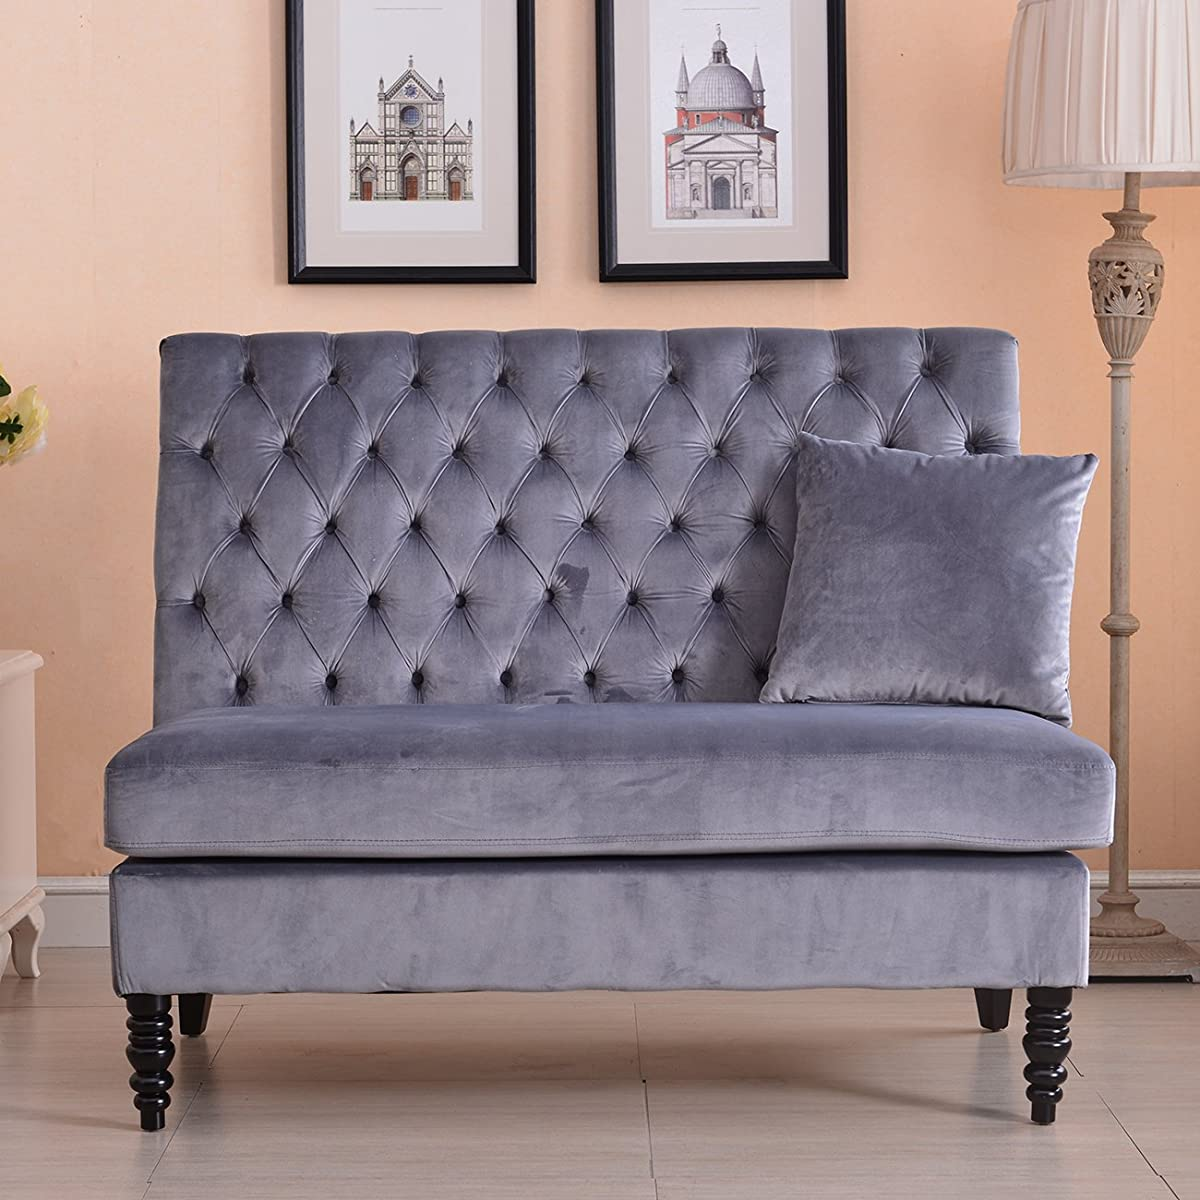 Velvet Modern Tufted Settee Bench Bedroom Sofa High Back